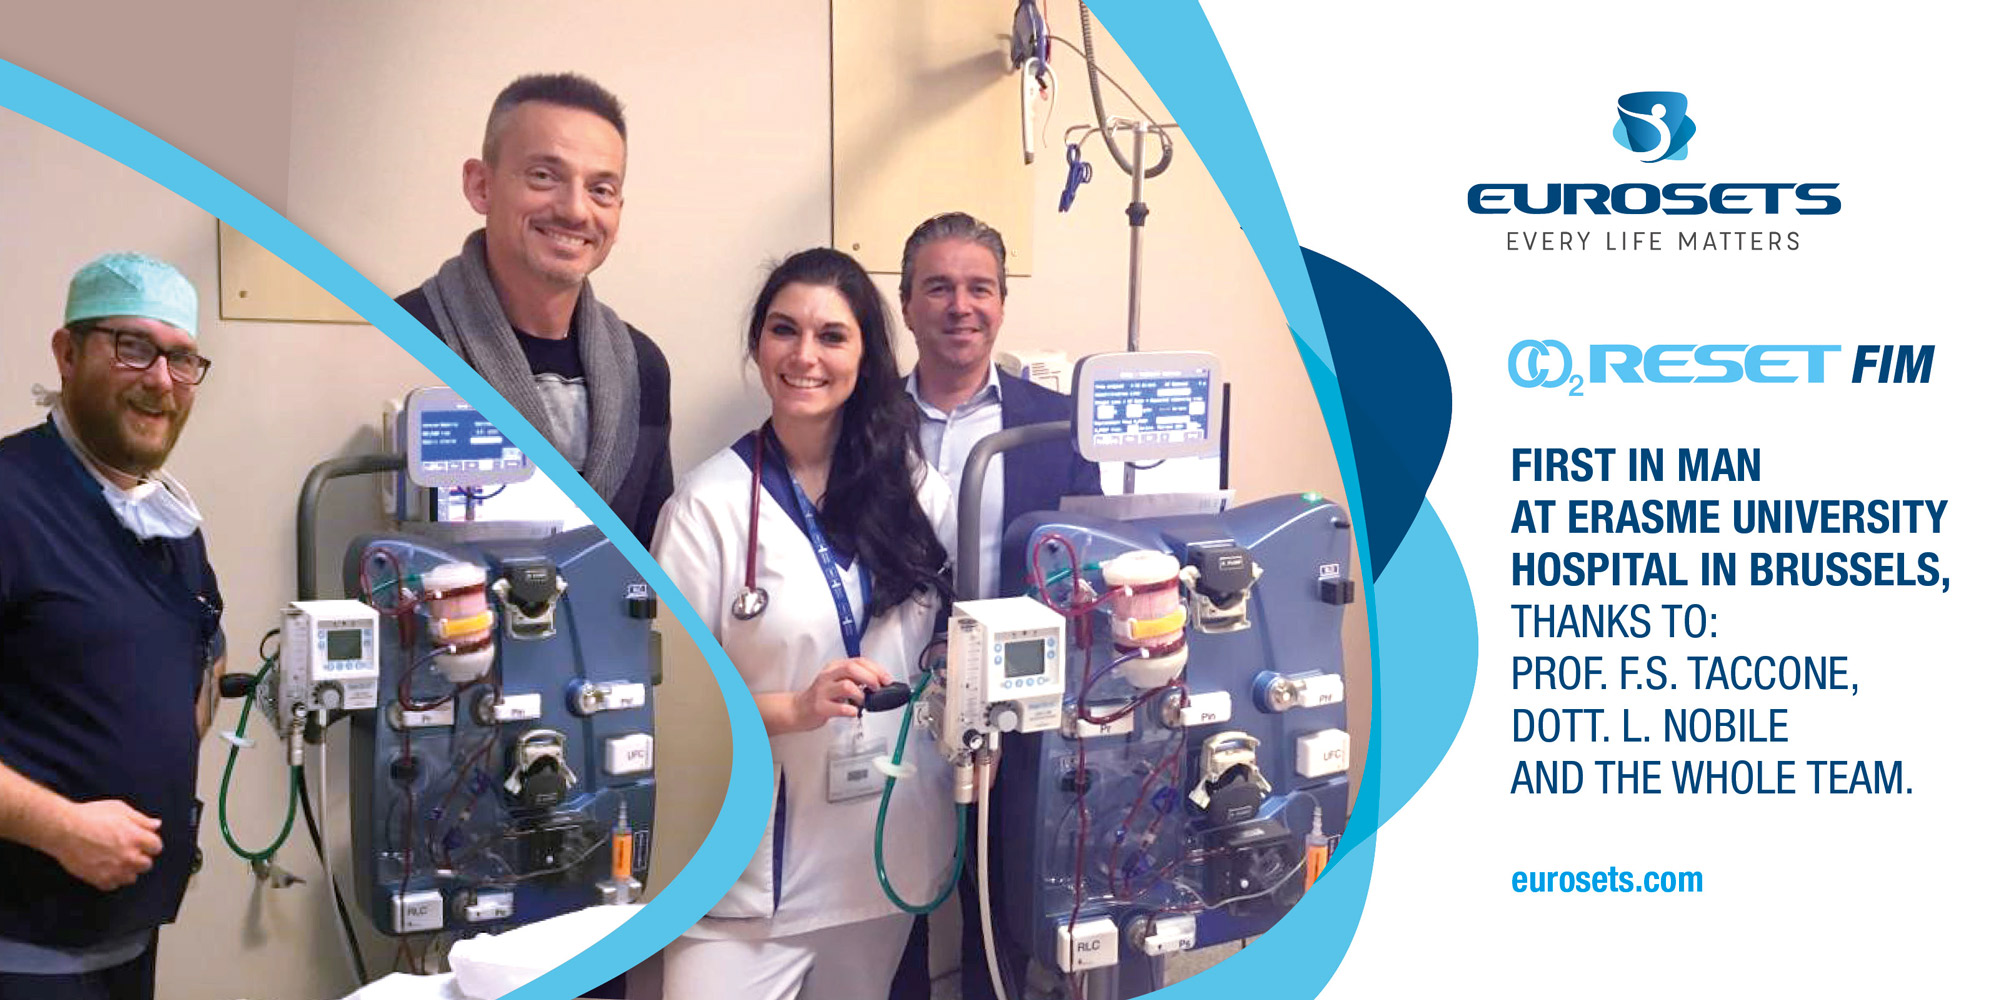 Eurosets announces first patient treated with CO2Reset